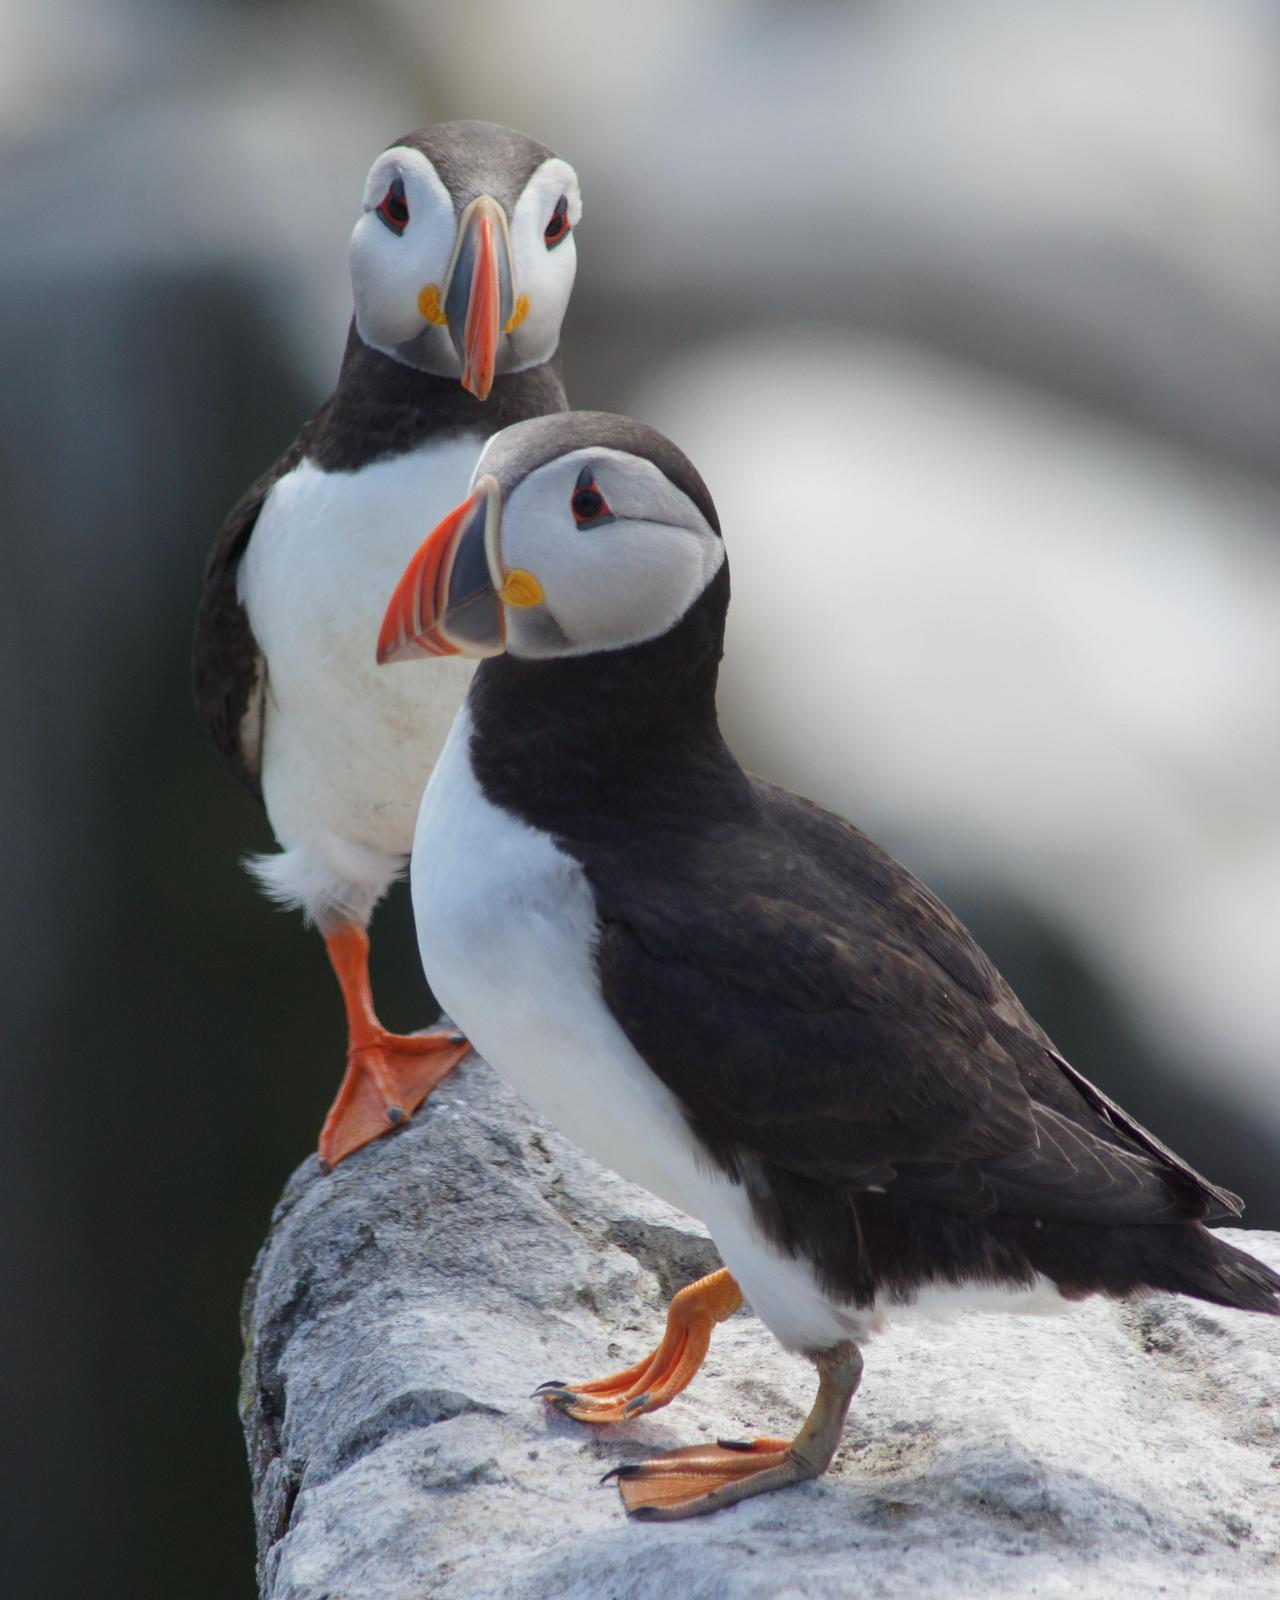 Atlantic Puffin Photo by Steve Percival